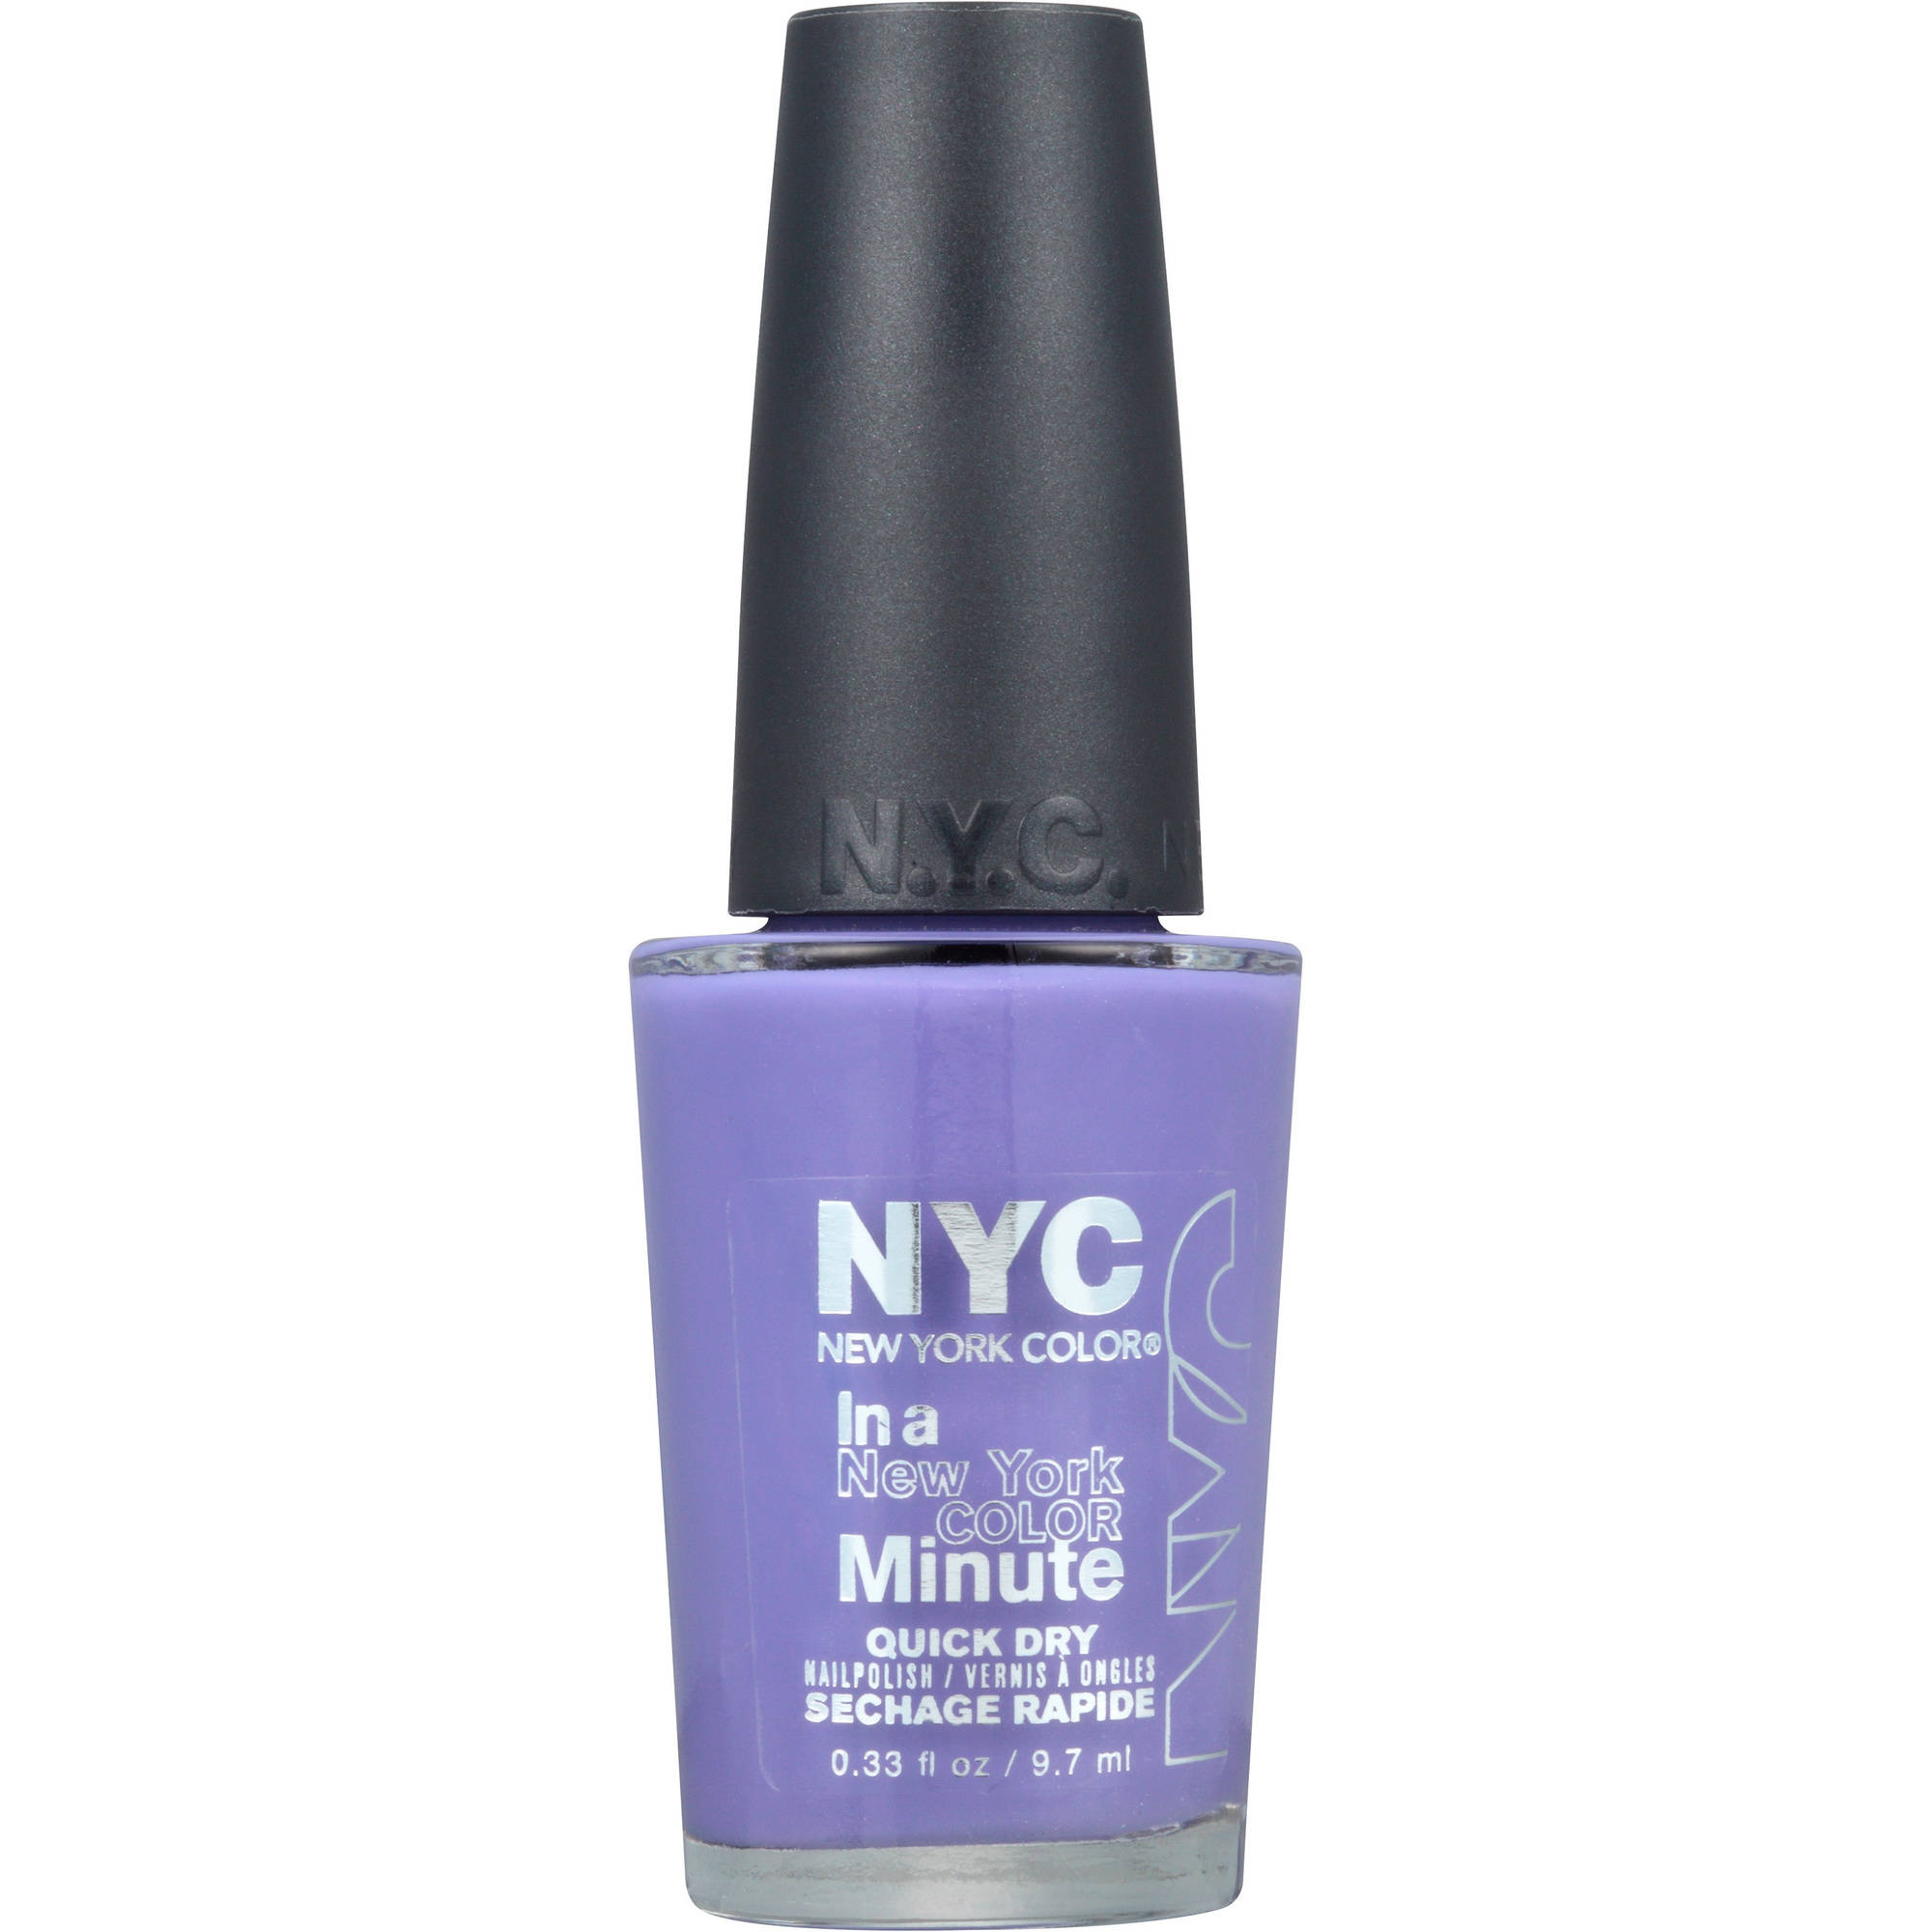 NYC New York Color In a New York Color Minute Nail Polish, 265 ...